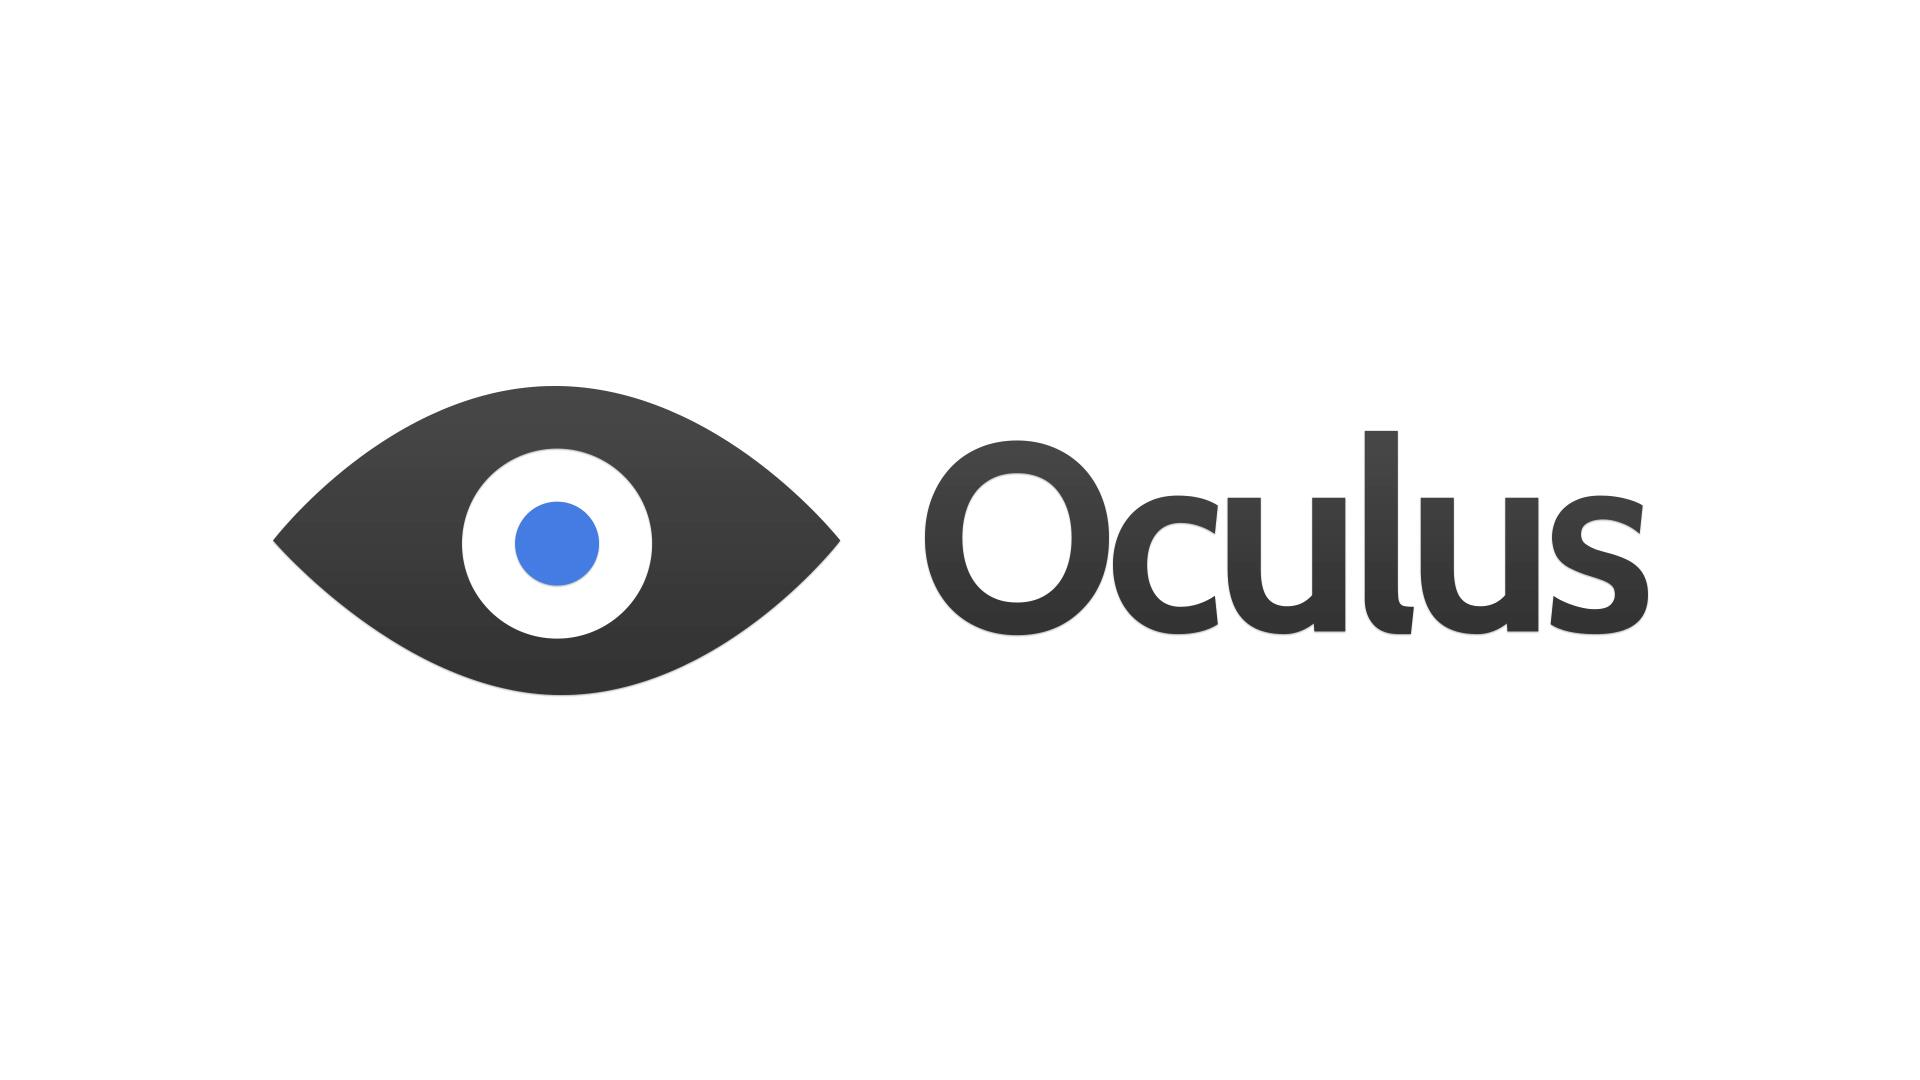 Oculus VR was acquired by Facebook for $2bn